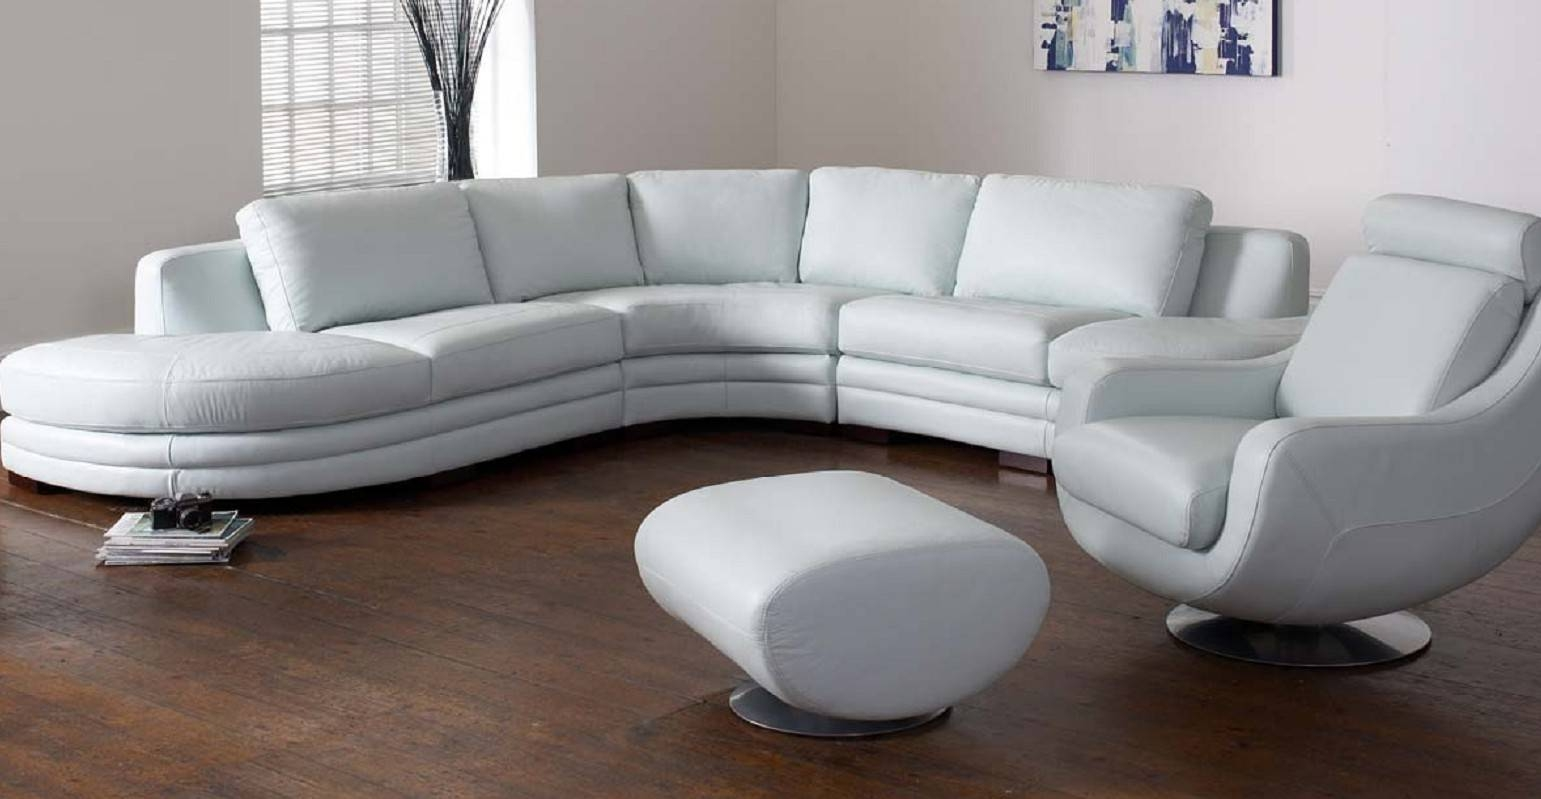 Awesome Italian Leather Sofa #6 - Leather Corner Sofa Shop Online pertaining to White Leather Corner Sofa (Image 1 of 30)